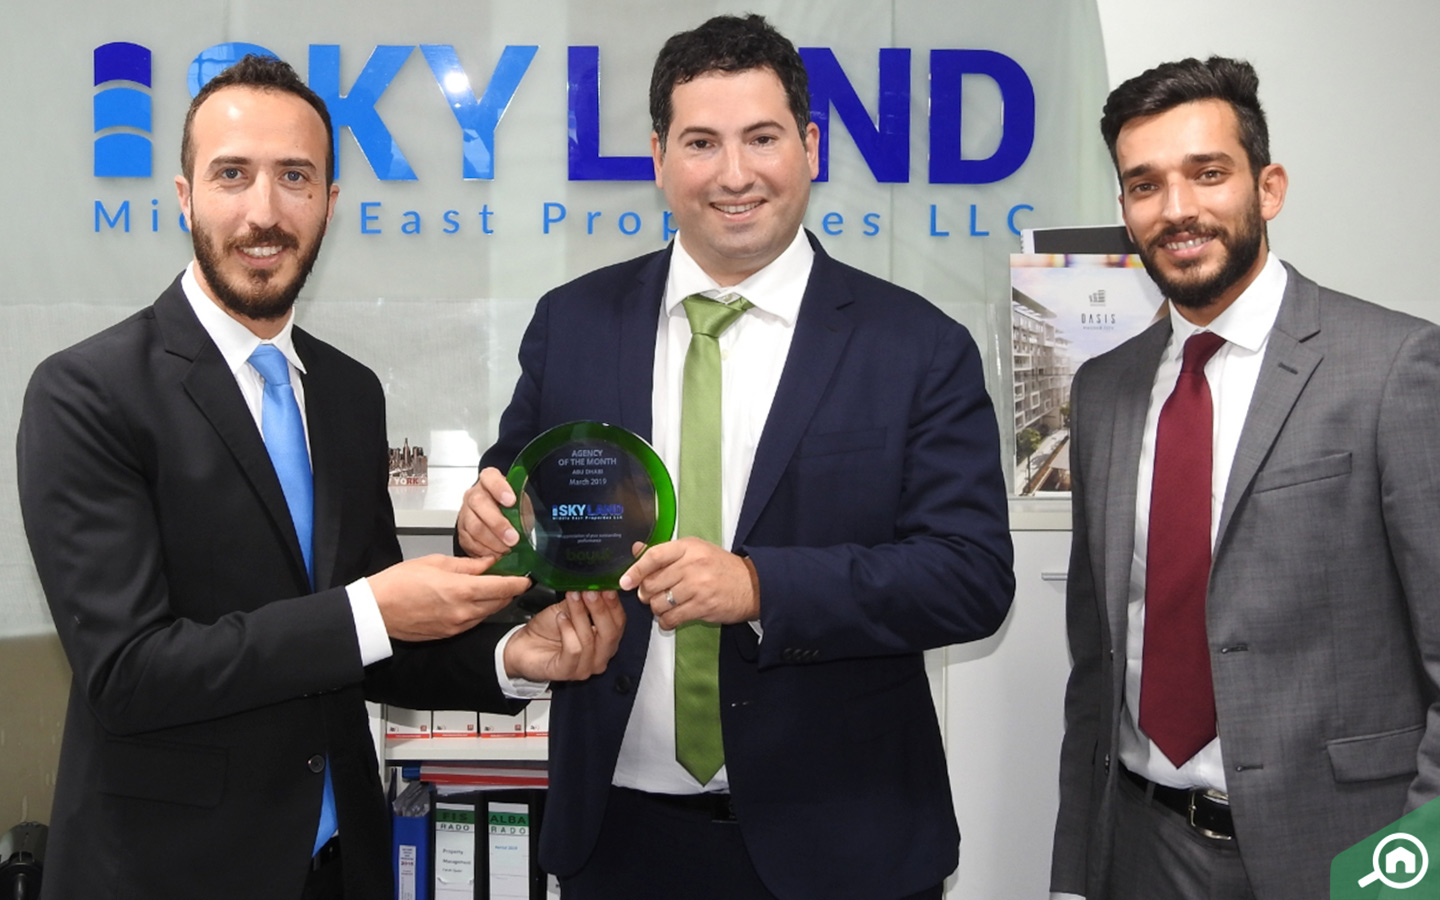 Raed Hamze, Managing Partner at Skyland Middle East